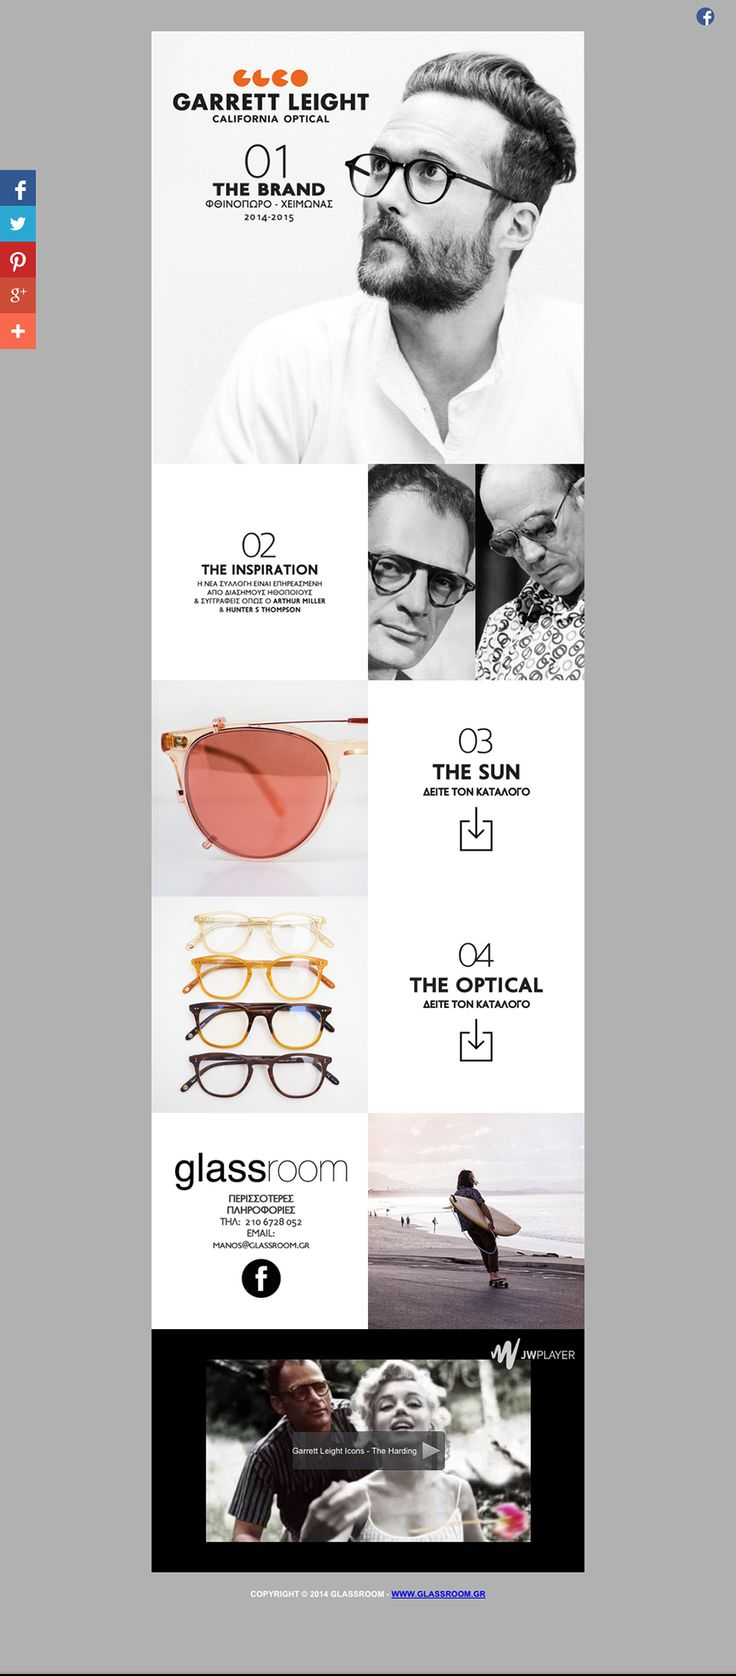 Glassroom Newletter No1 Garrett Leight California Optical  ➜ http://bit.ly/1sBF4dF